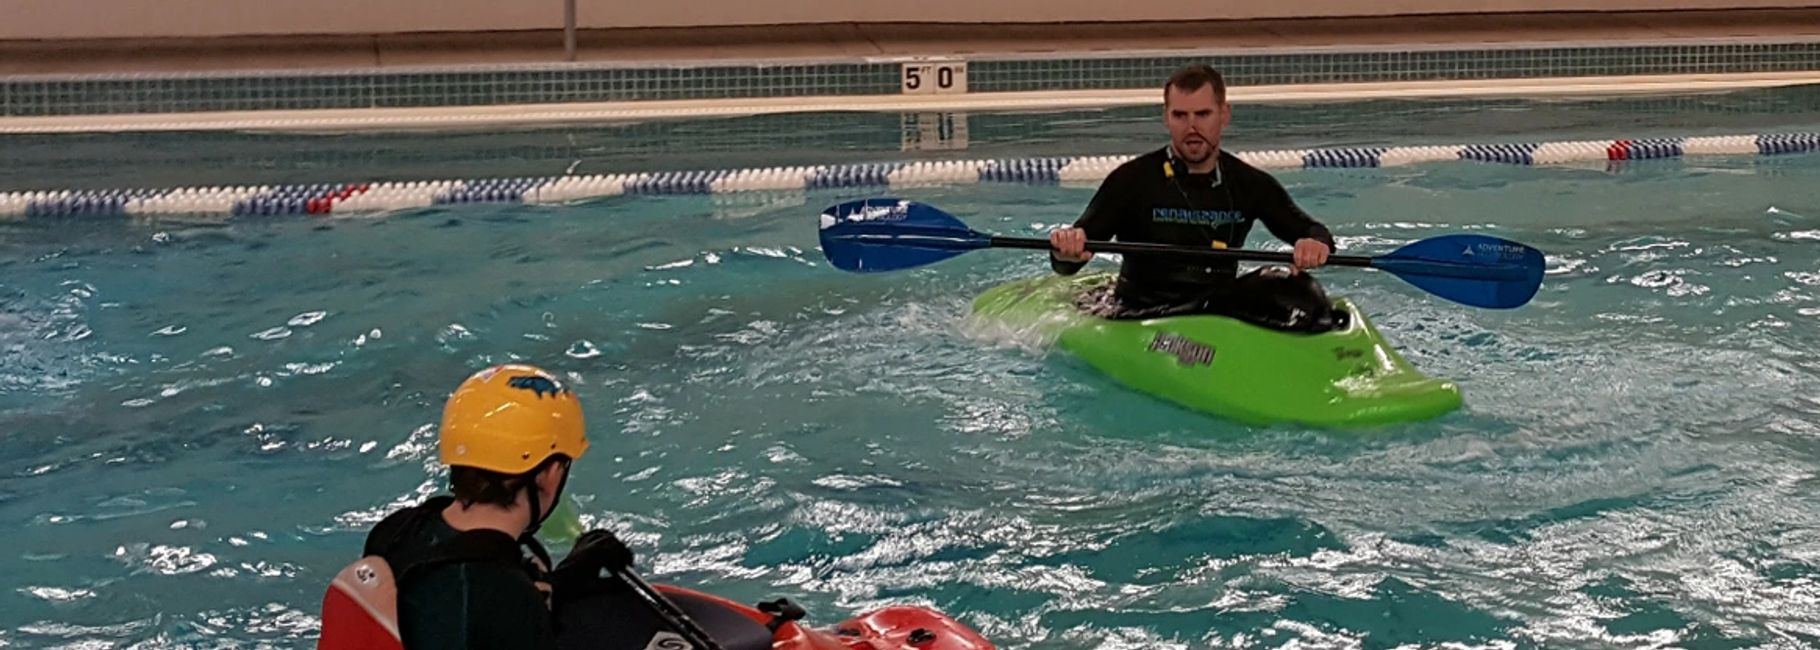 Learn to whitewater kayak at the Golden swimming pool. Premier kayak instruction in Colorado.